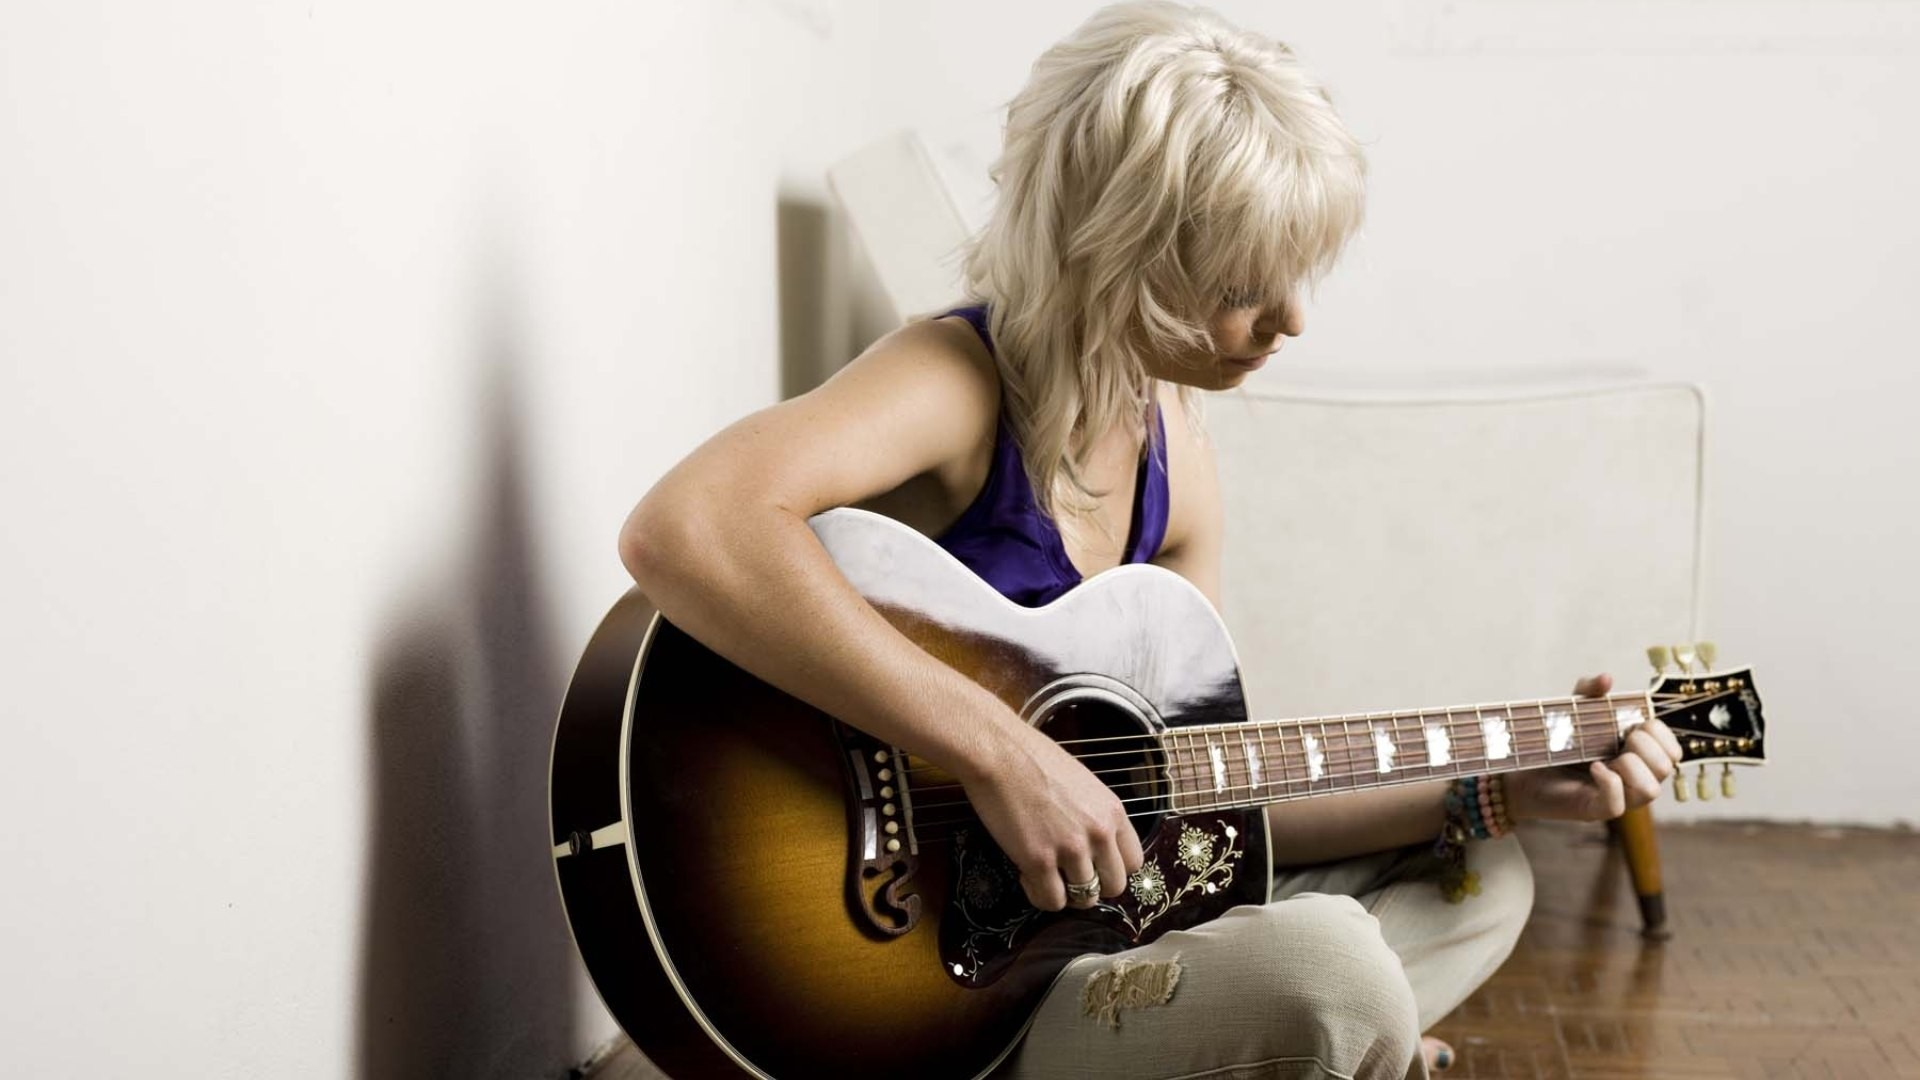 Res: 1920x1080, Get the latest gin wigmore, guitar, girl news, pictures and videos and  learn all about gin wigmore, guitar, girl from wallpapers4u.org, your  wallpaper news ...